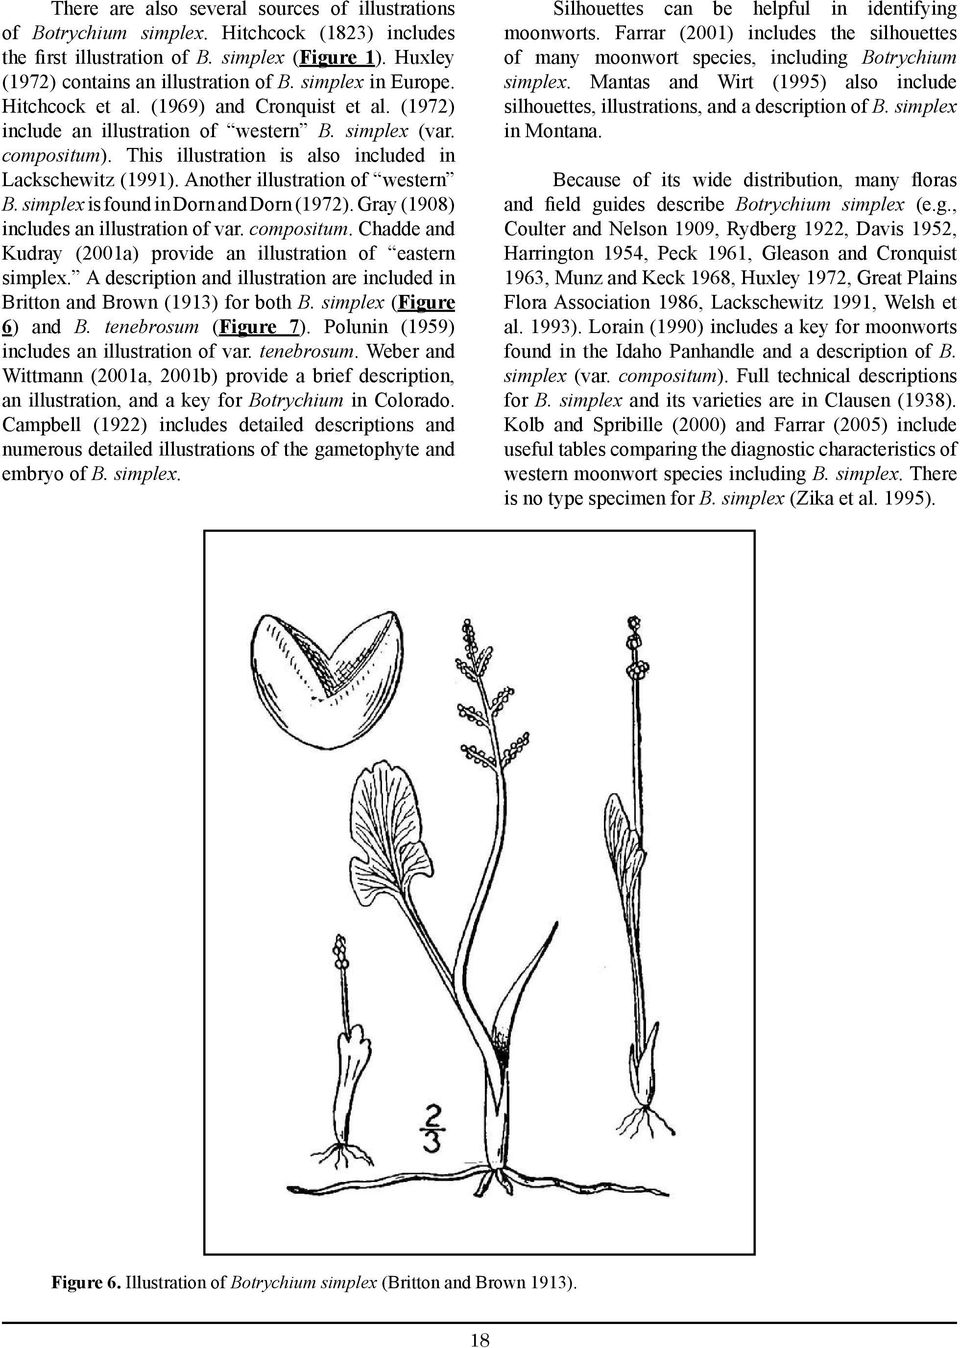 Another illustration of western B. simplex is found in Dorn and Dorn (1972). Gray (1908) includes an illustration of var. compositum.